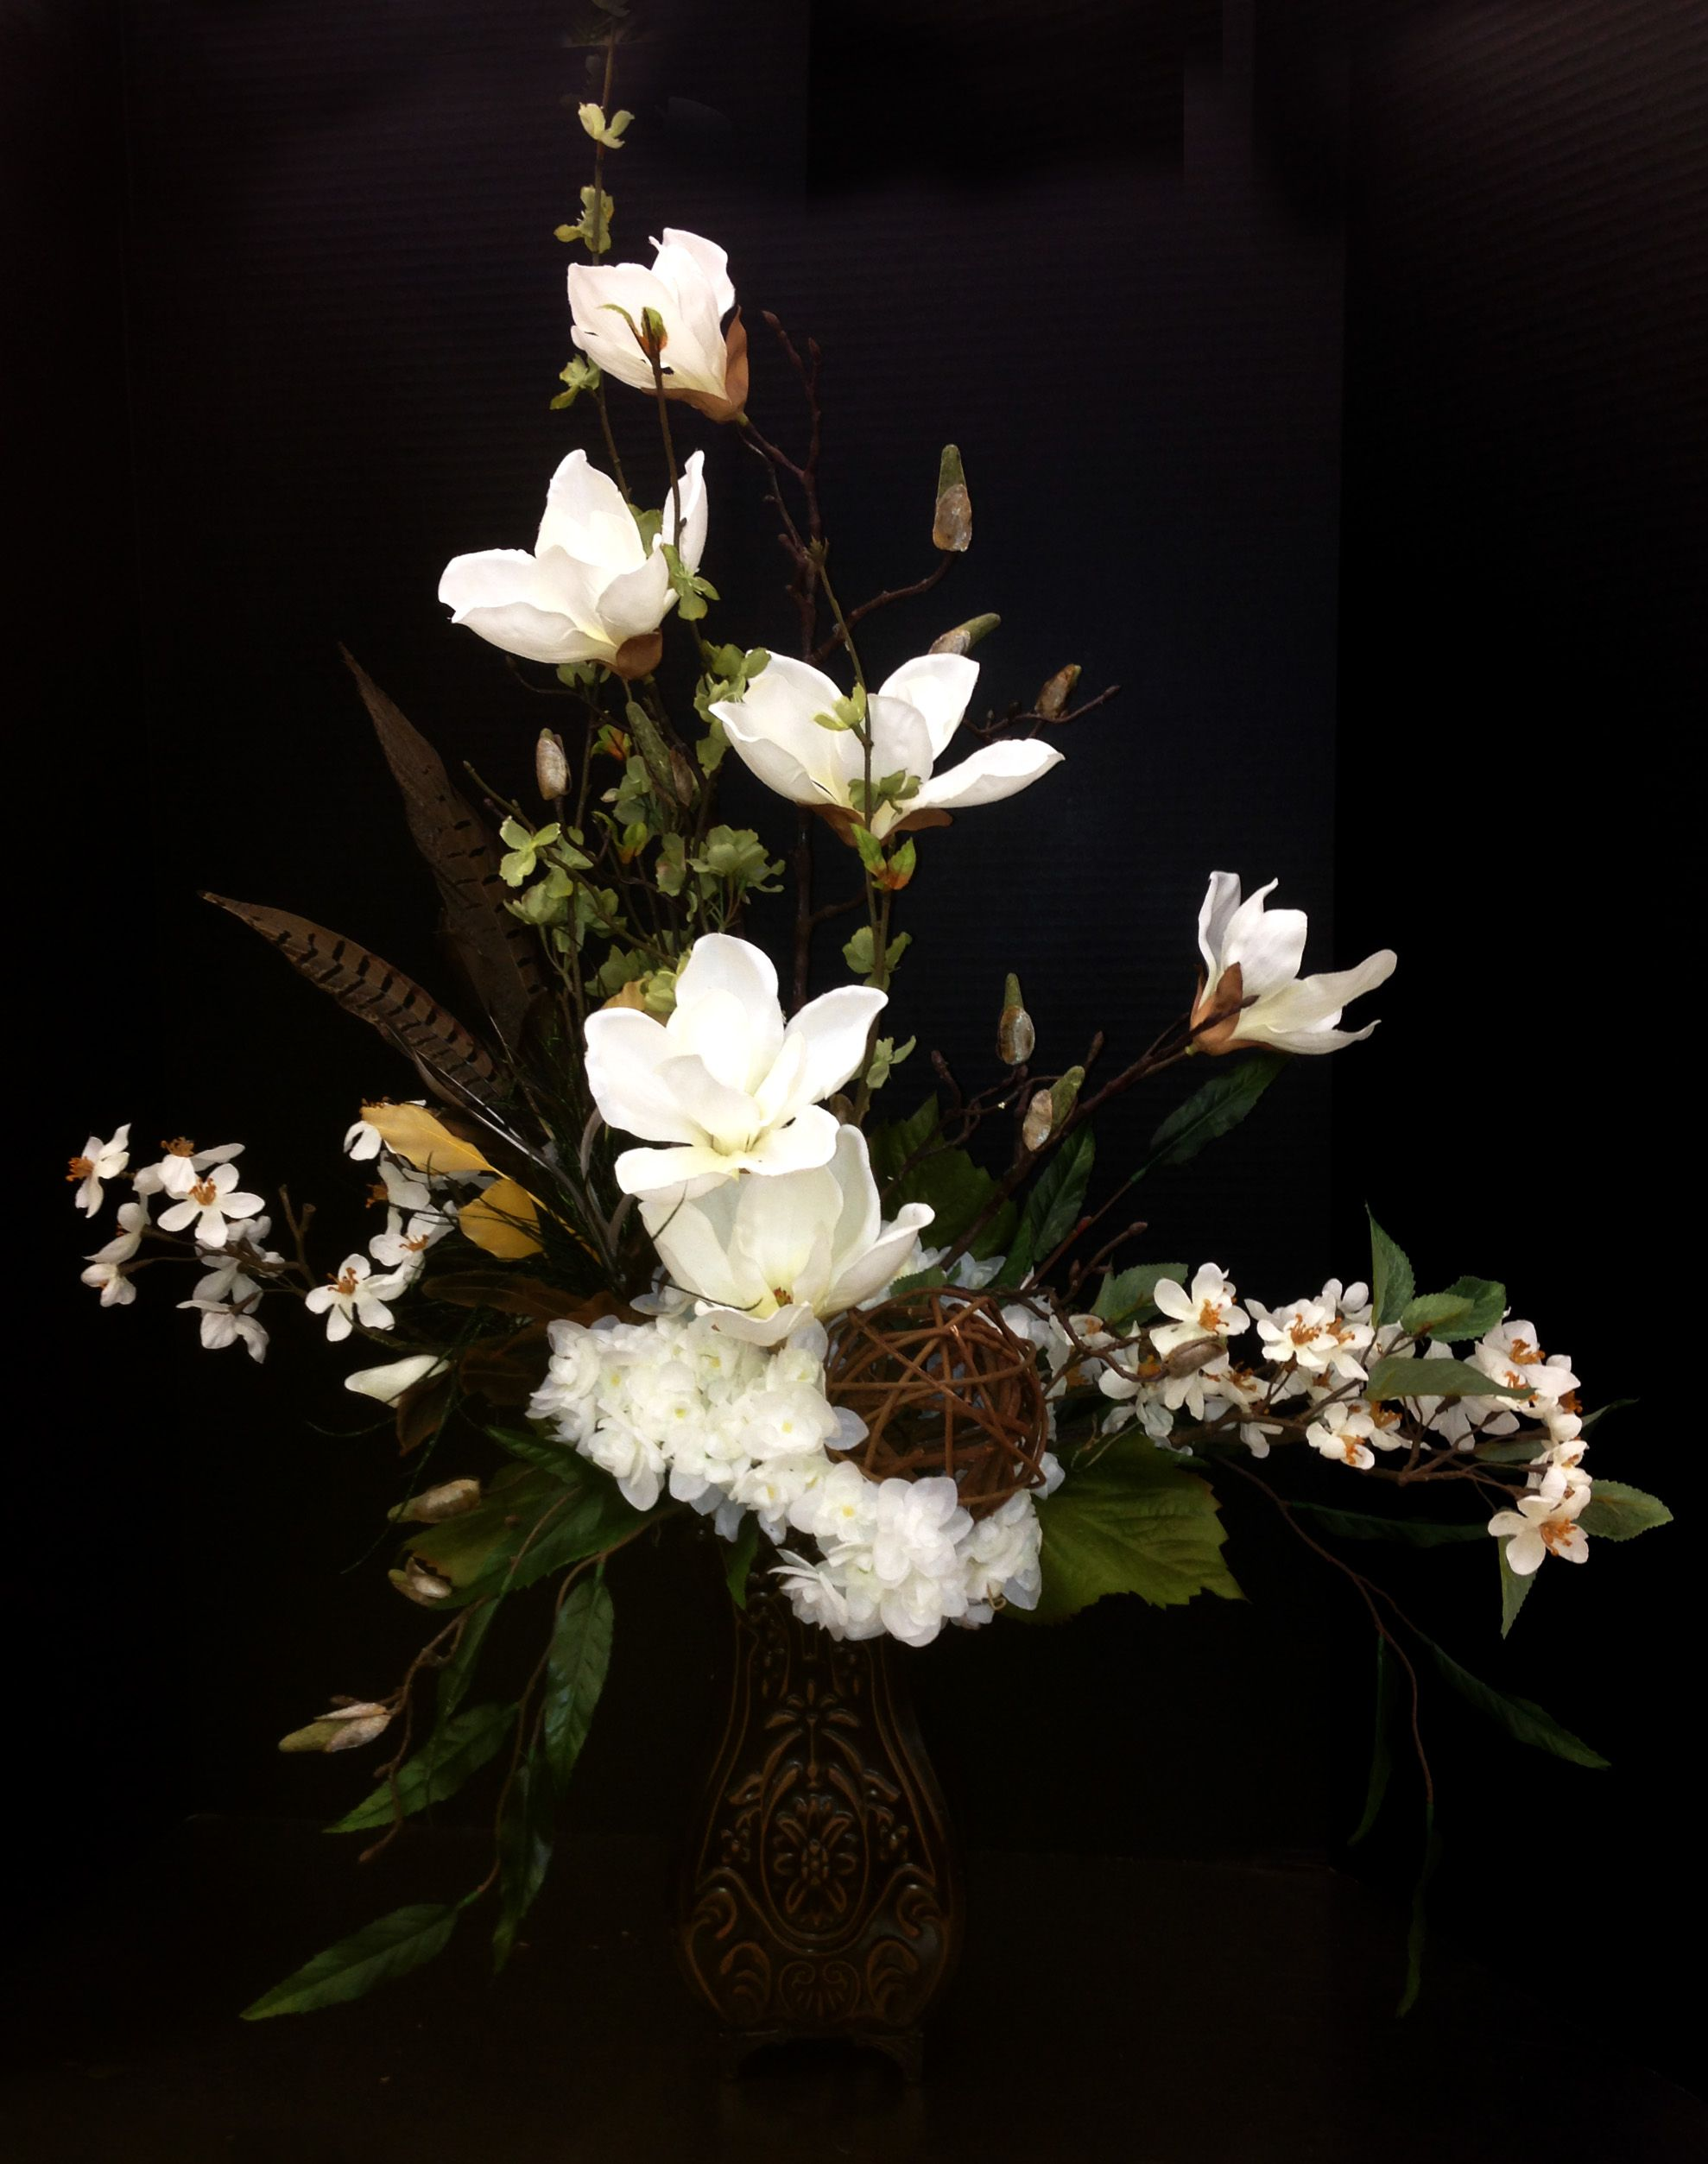 Pin By Barb Cieslak On My Michaels Designs Sba Spring Flower Arrangements Floral Arrangements Magnolia Flower